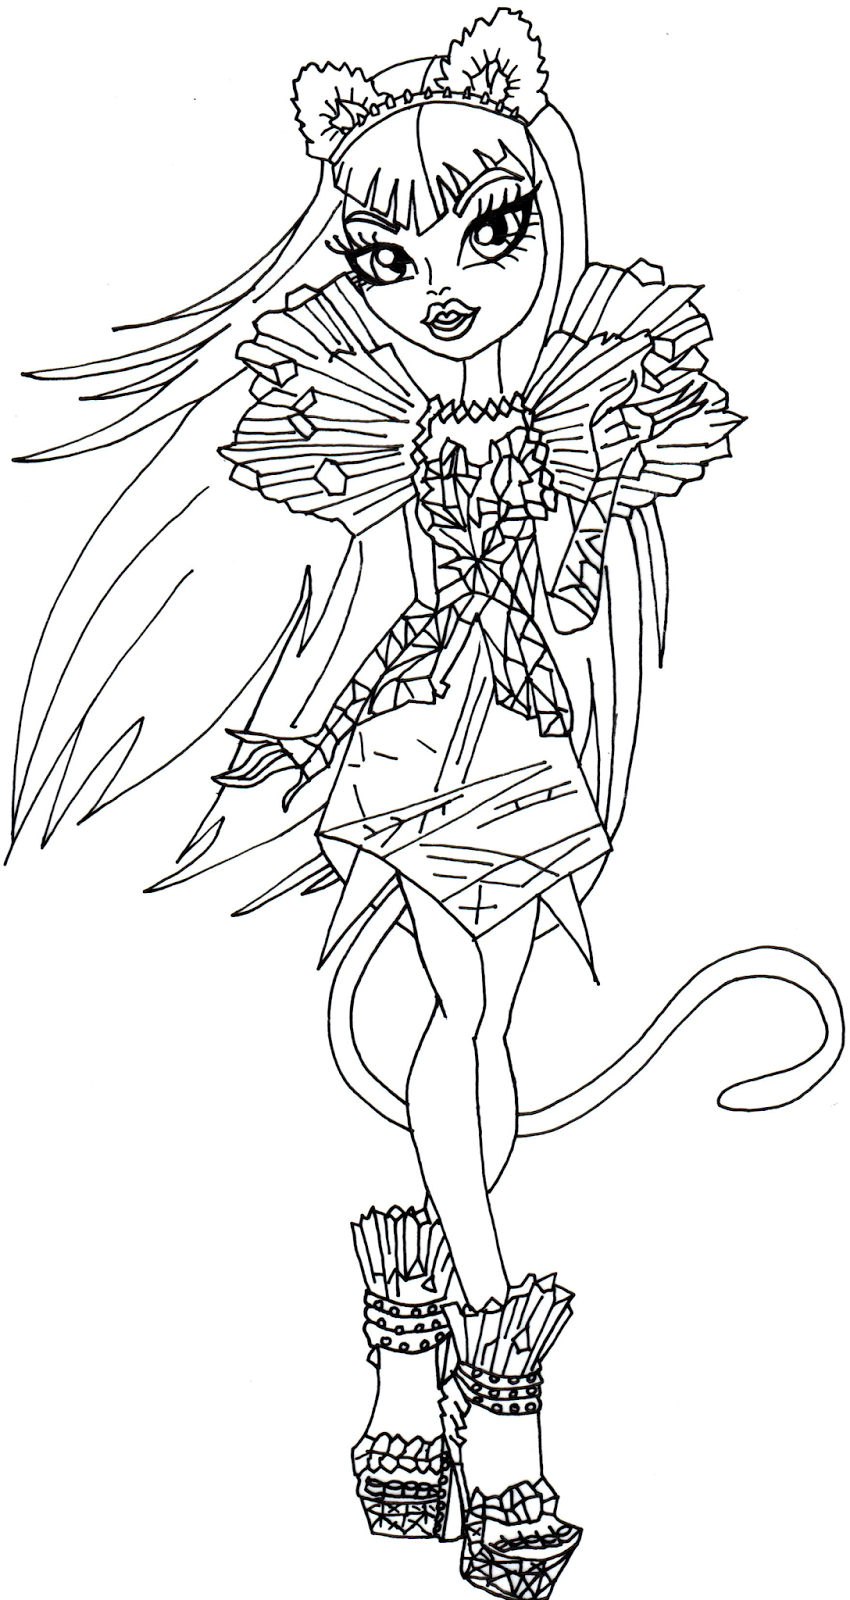 Free Printable Monster High Coloring Pages Catty Noir Boo High Coloring Pages Print